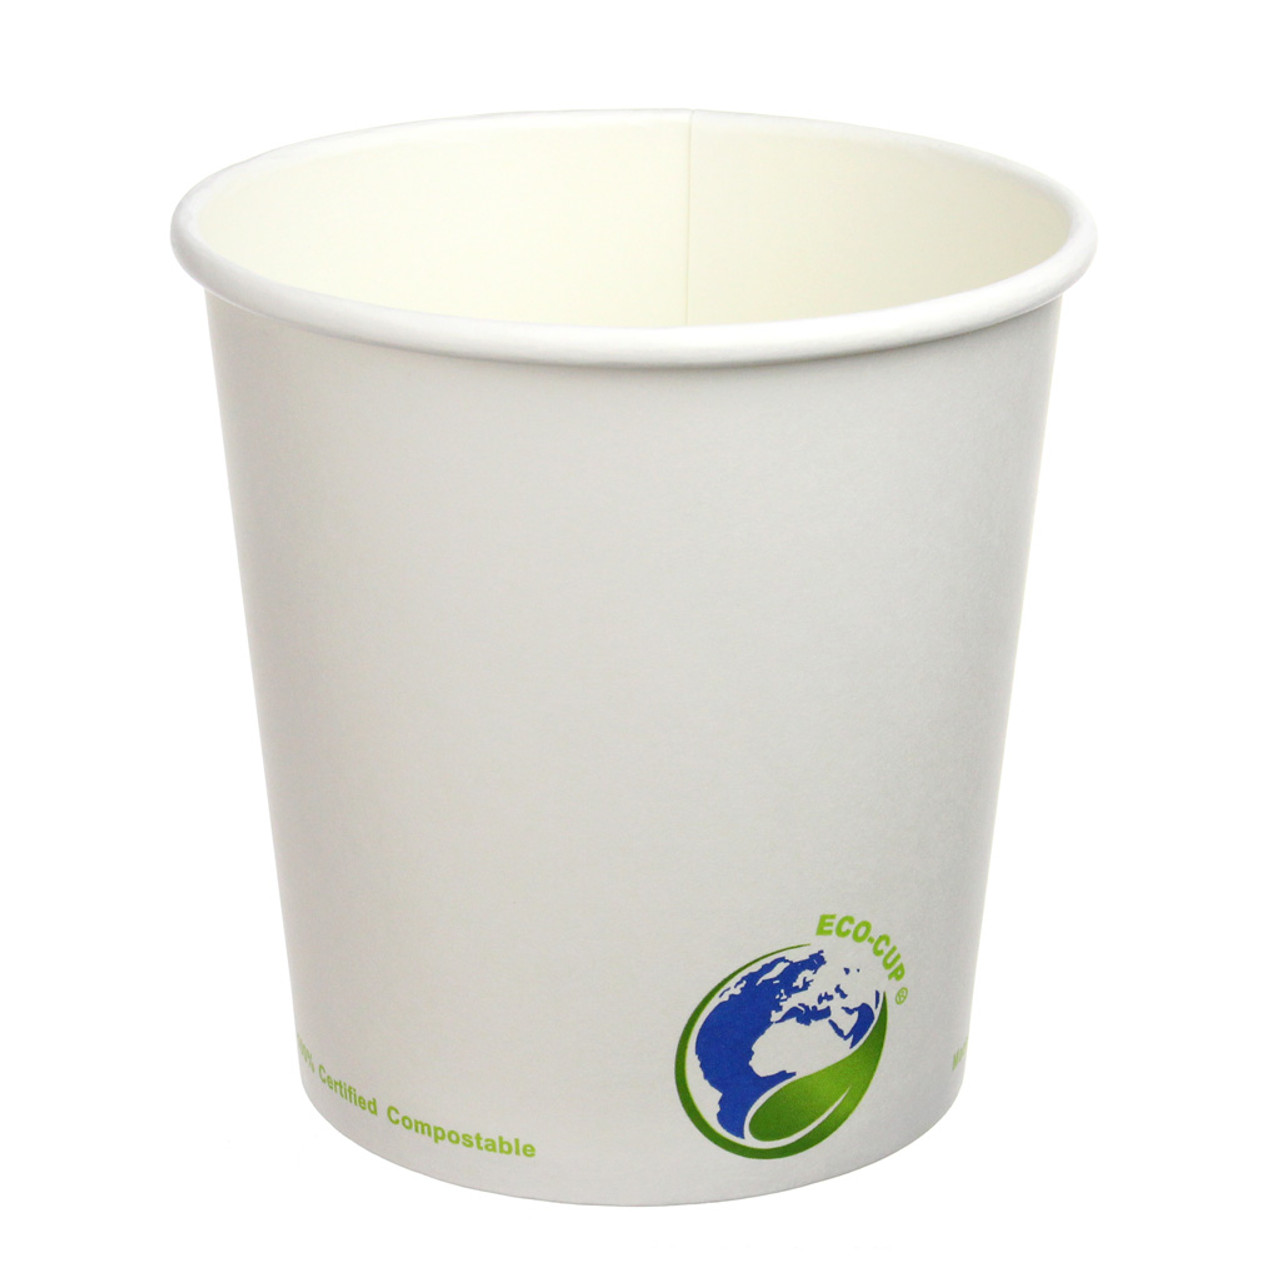 24oz Compostable Soup Container